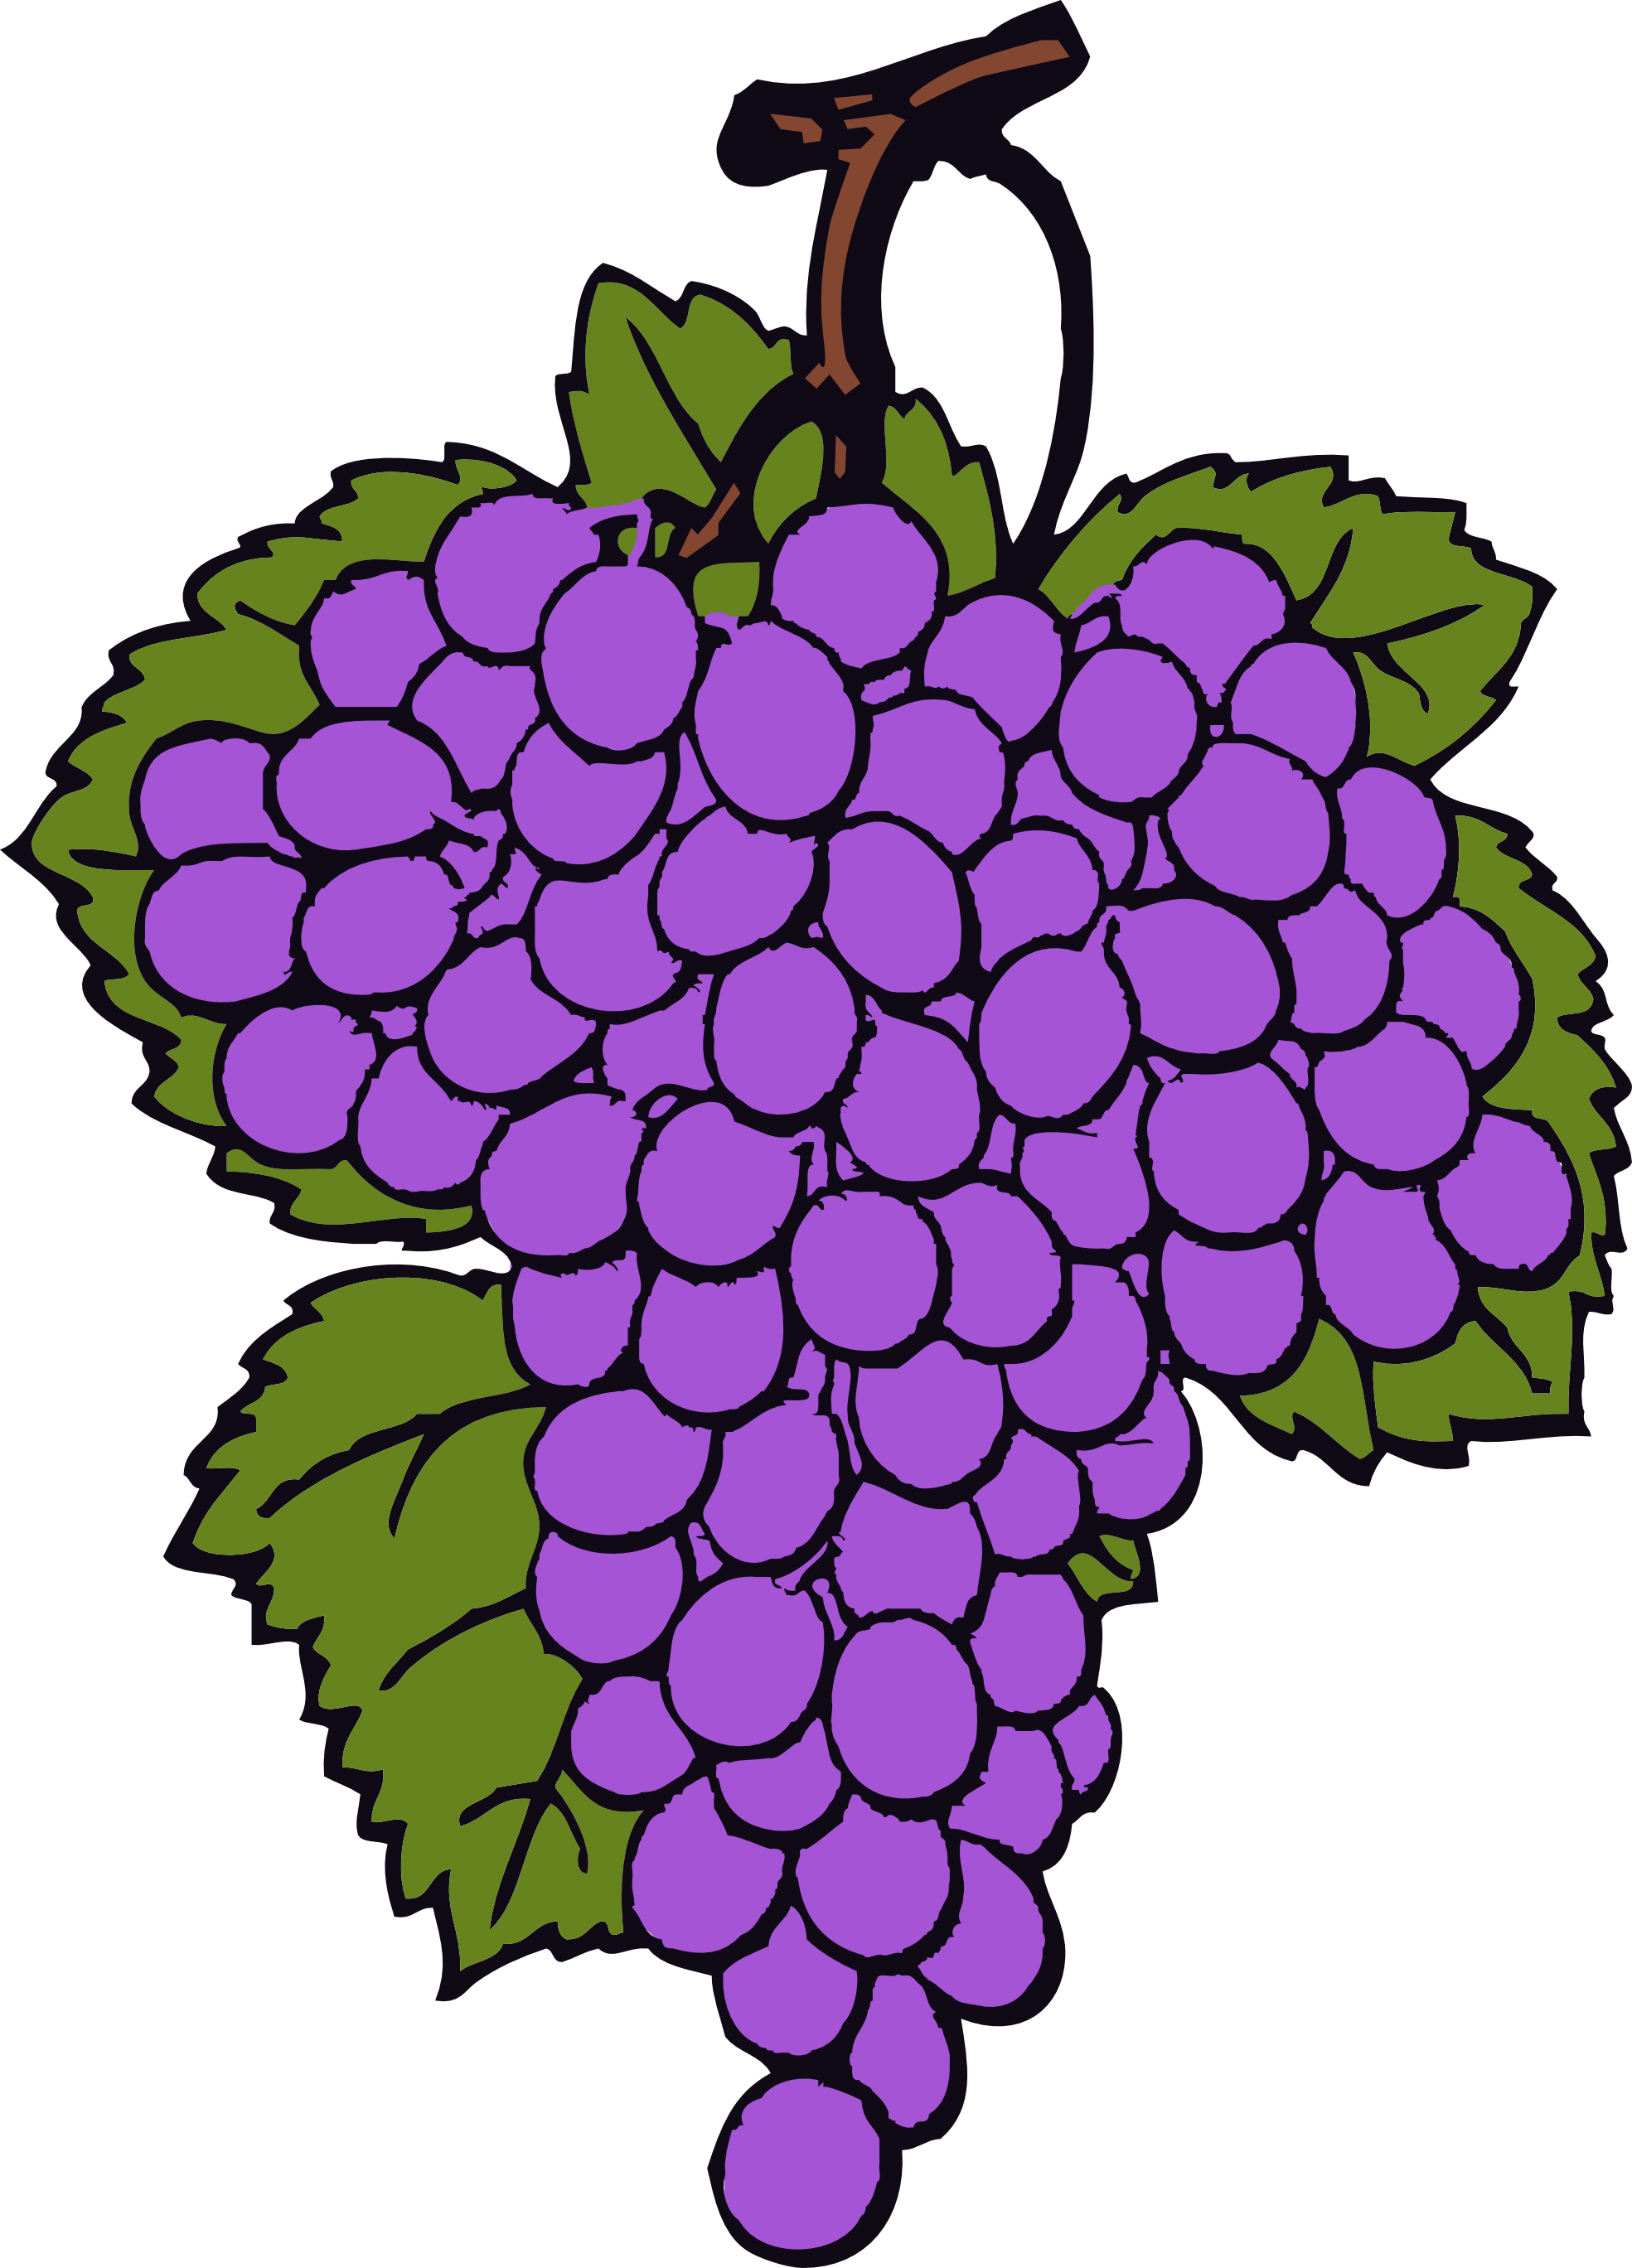 for grapes clip art clipart panda free clipart images rh clipartpanda com clipart grapes images clipart grapes black and white